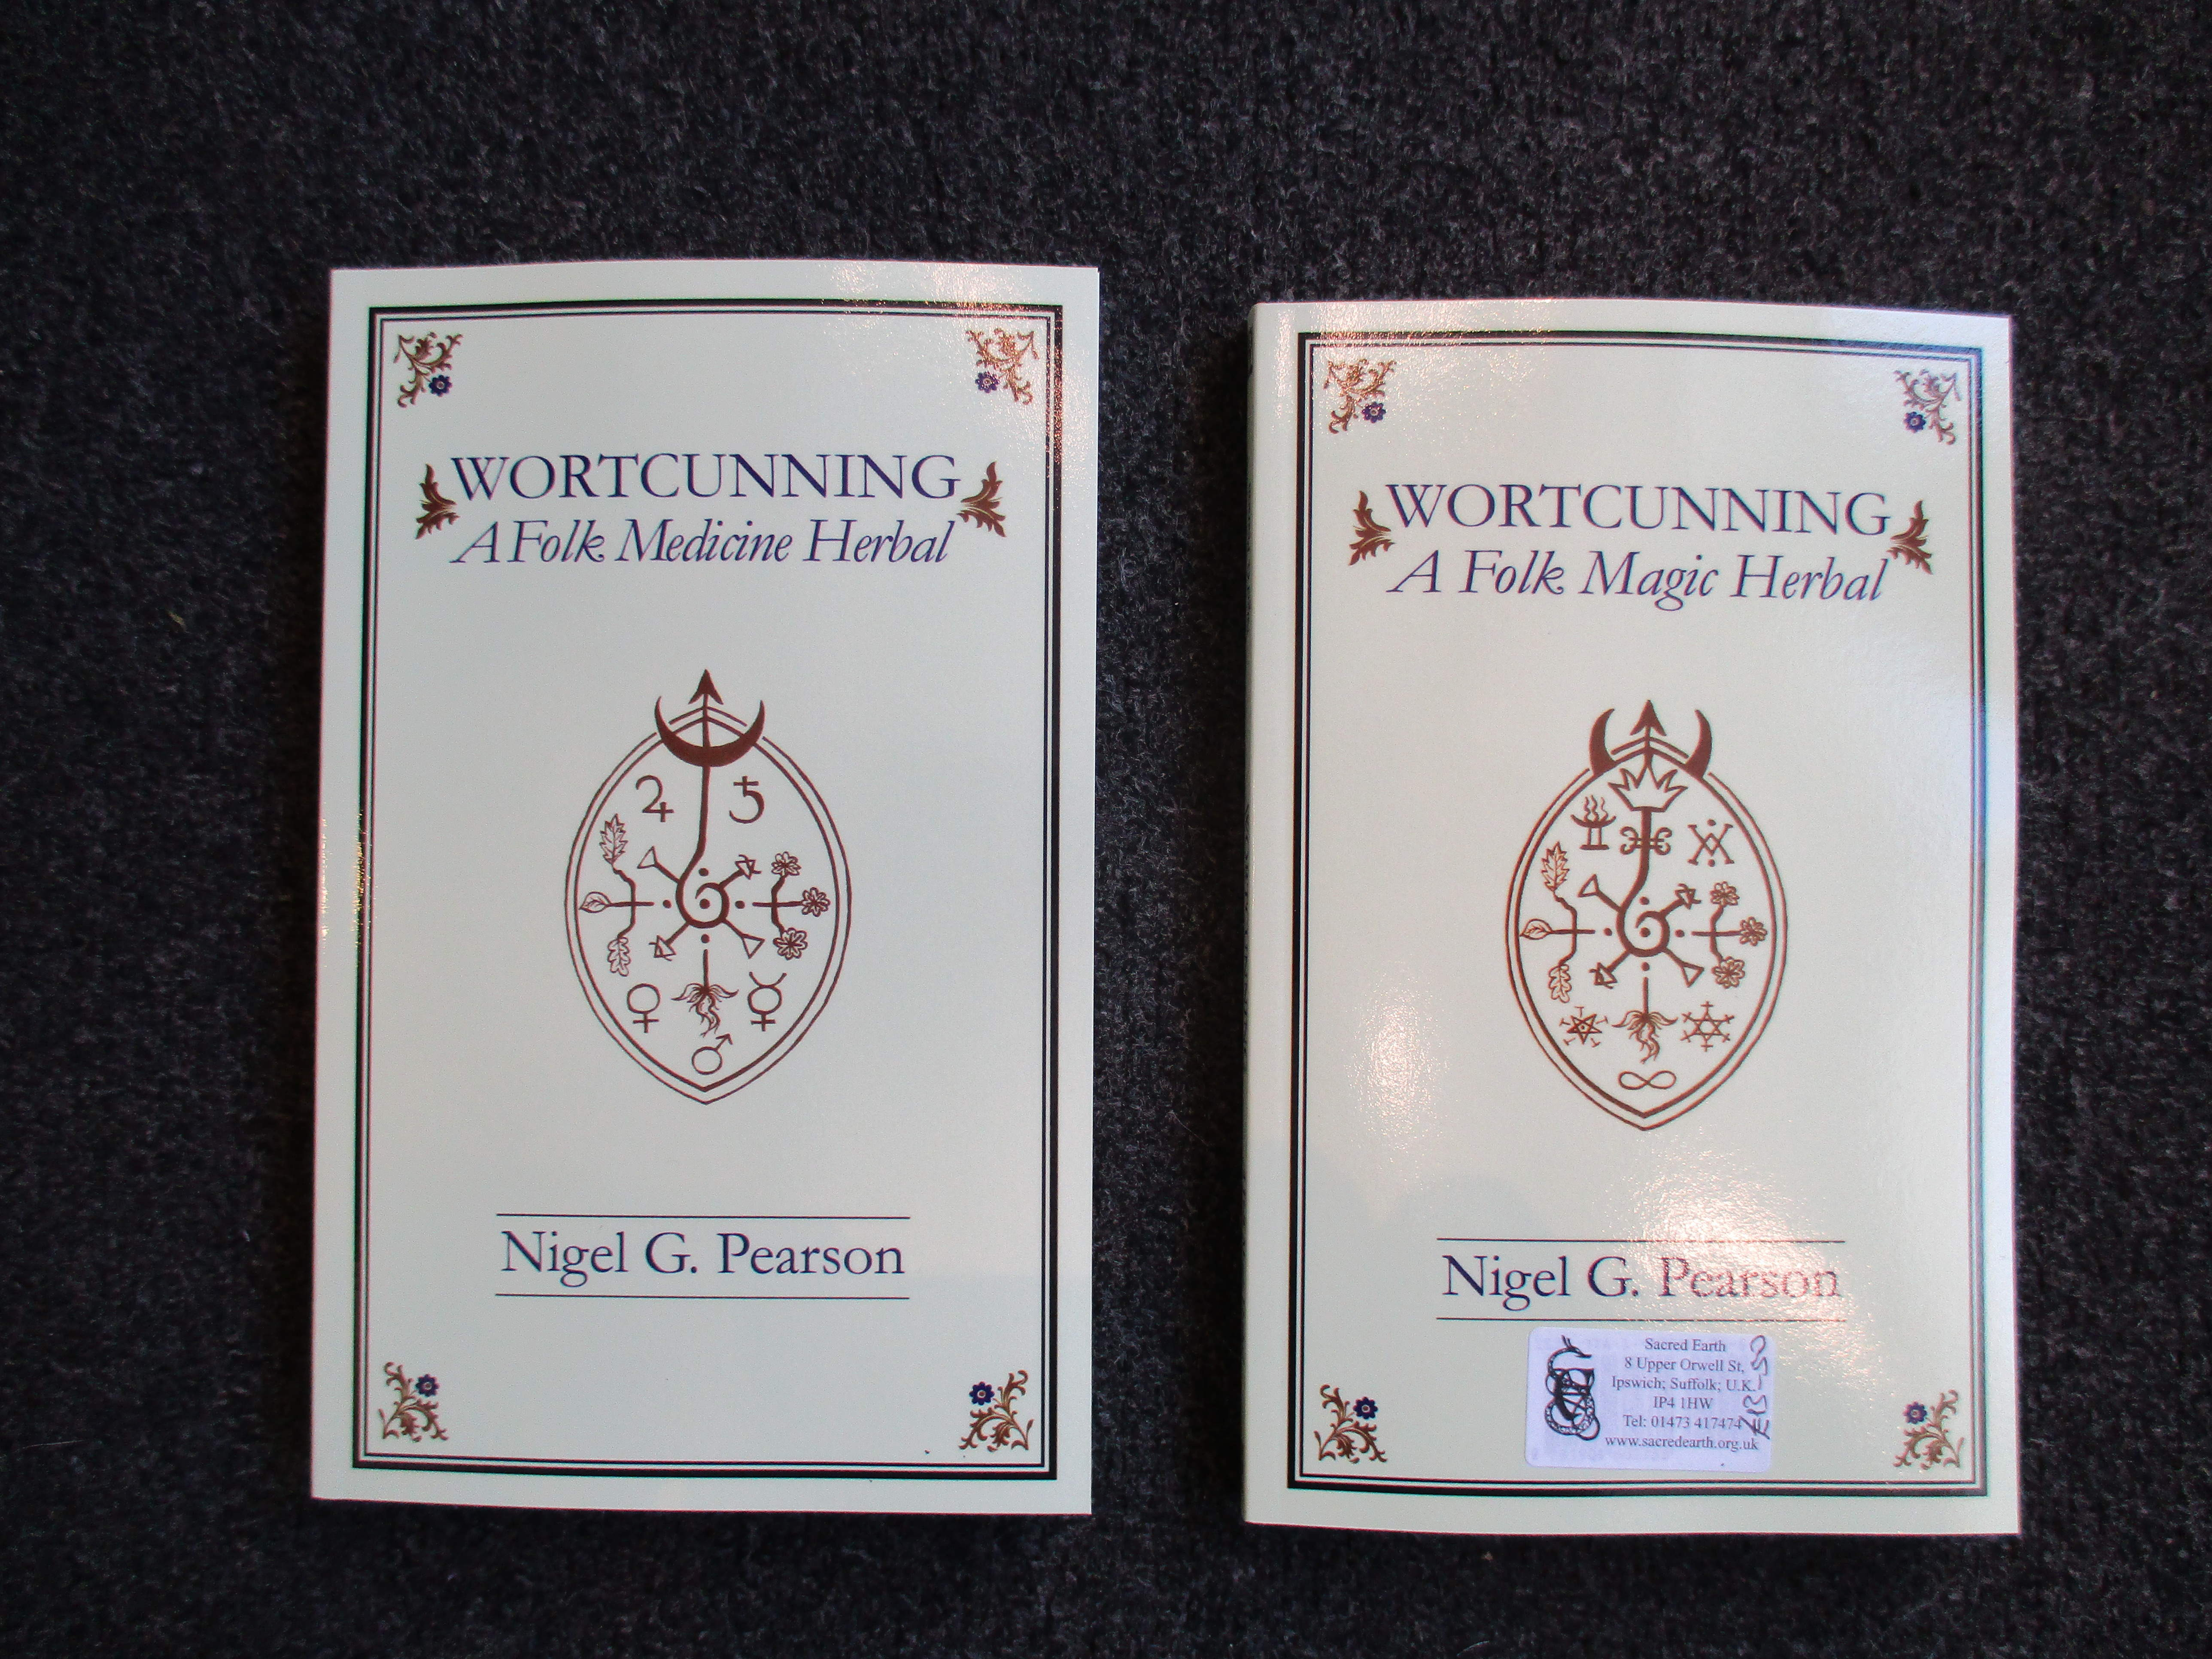 WortCunning: A Folk Medicine/Magical Herbal. By Nigel G. Pearson. Paperback Edition.